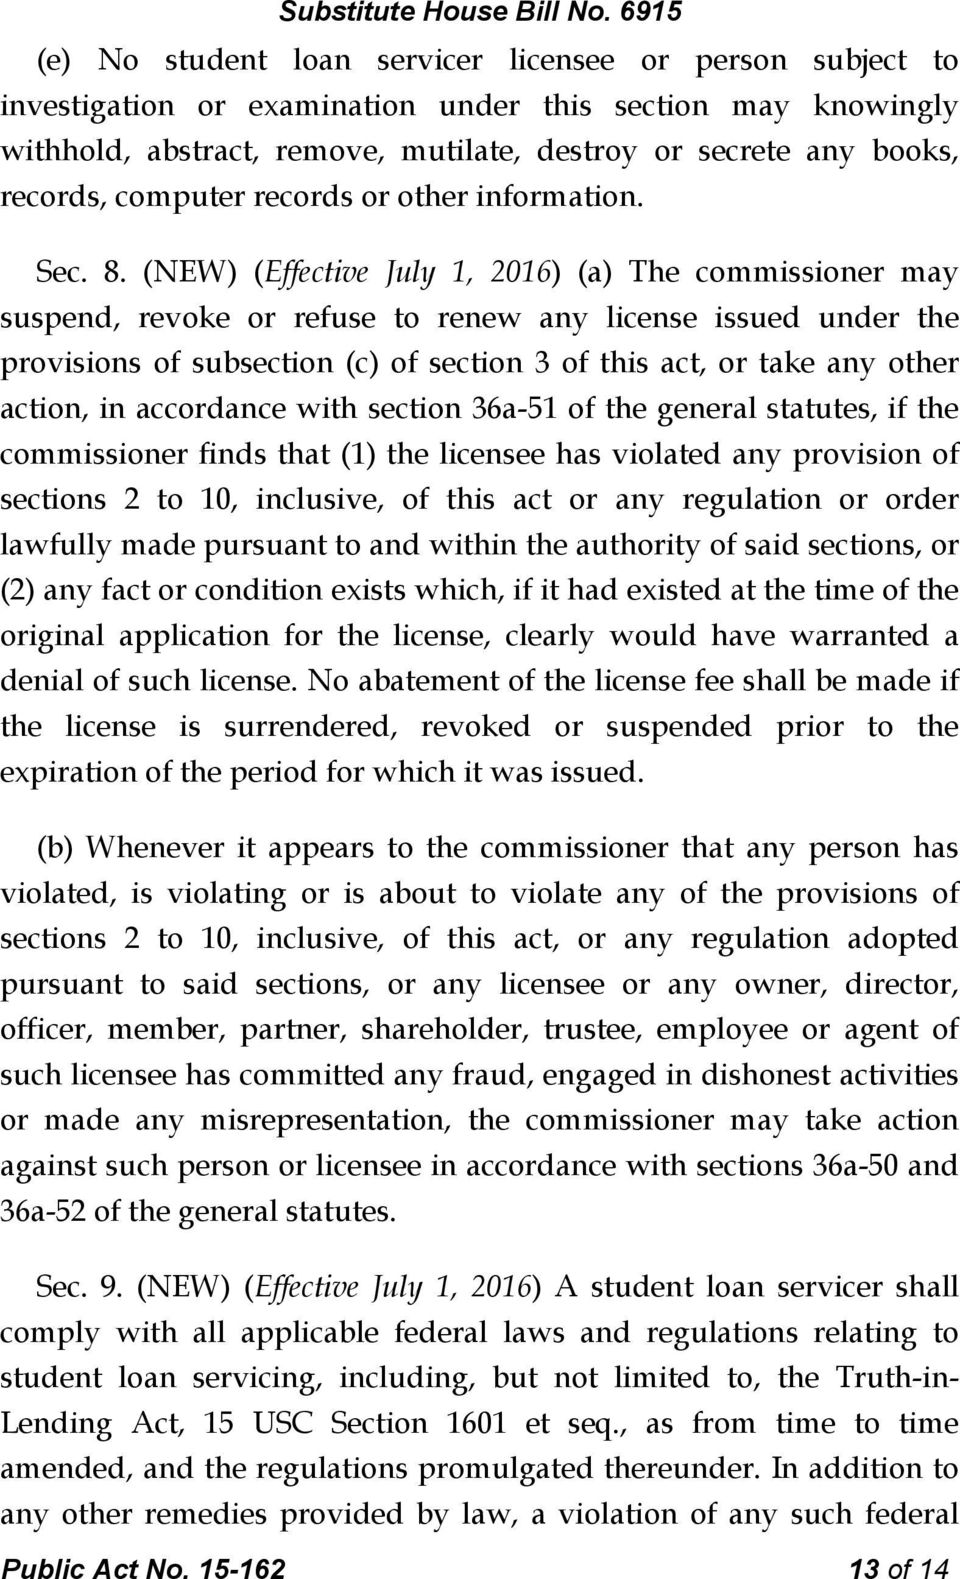 (NEW) (Effective July 1, 2016) (a) The commissioner may suspend, revoke or refuse to renew any license issued under the provisions of subsection (c) of section 3 of this act, or take any other